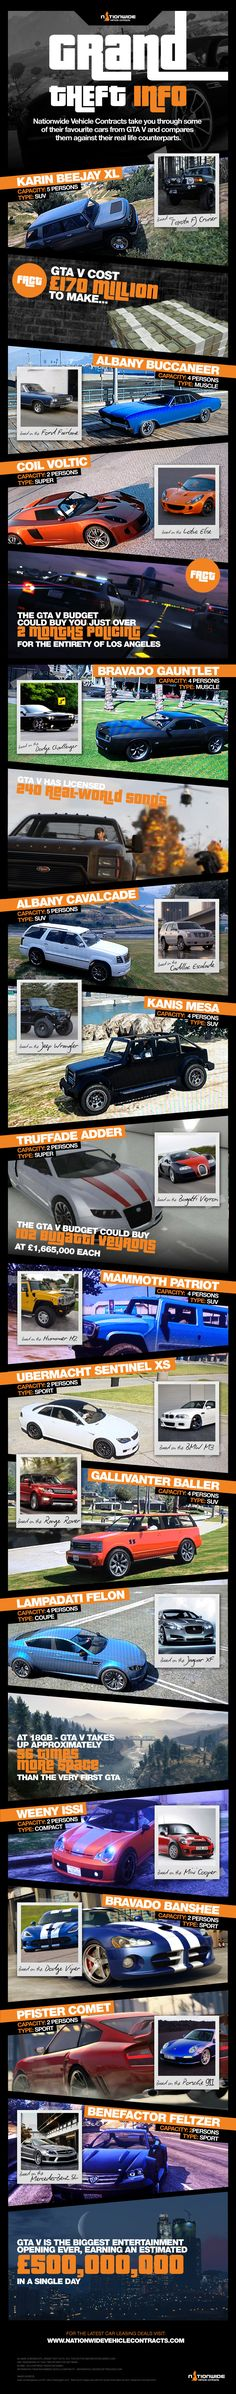 Games Infographics : Illustration Description Nationwide Vehicle Contracts take you through some of their favourite cars from GTA 5 and compares them against their real life counterparts. Camilla Luddington Tomb Raider, Playstation, Xbox 360, Grand Theft Auto Series, Gta Cars, Cultural Architecture, Rockstar Games, San Andreas, Tech